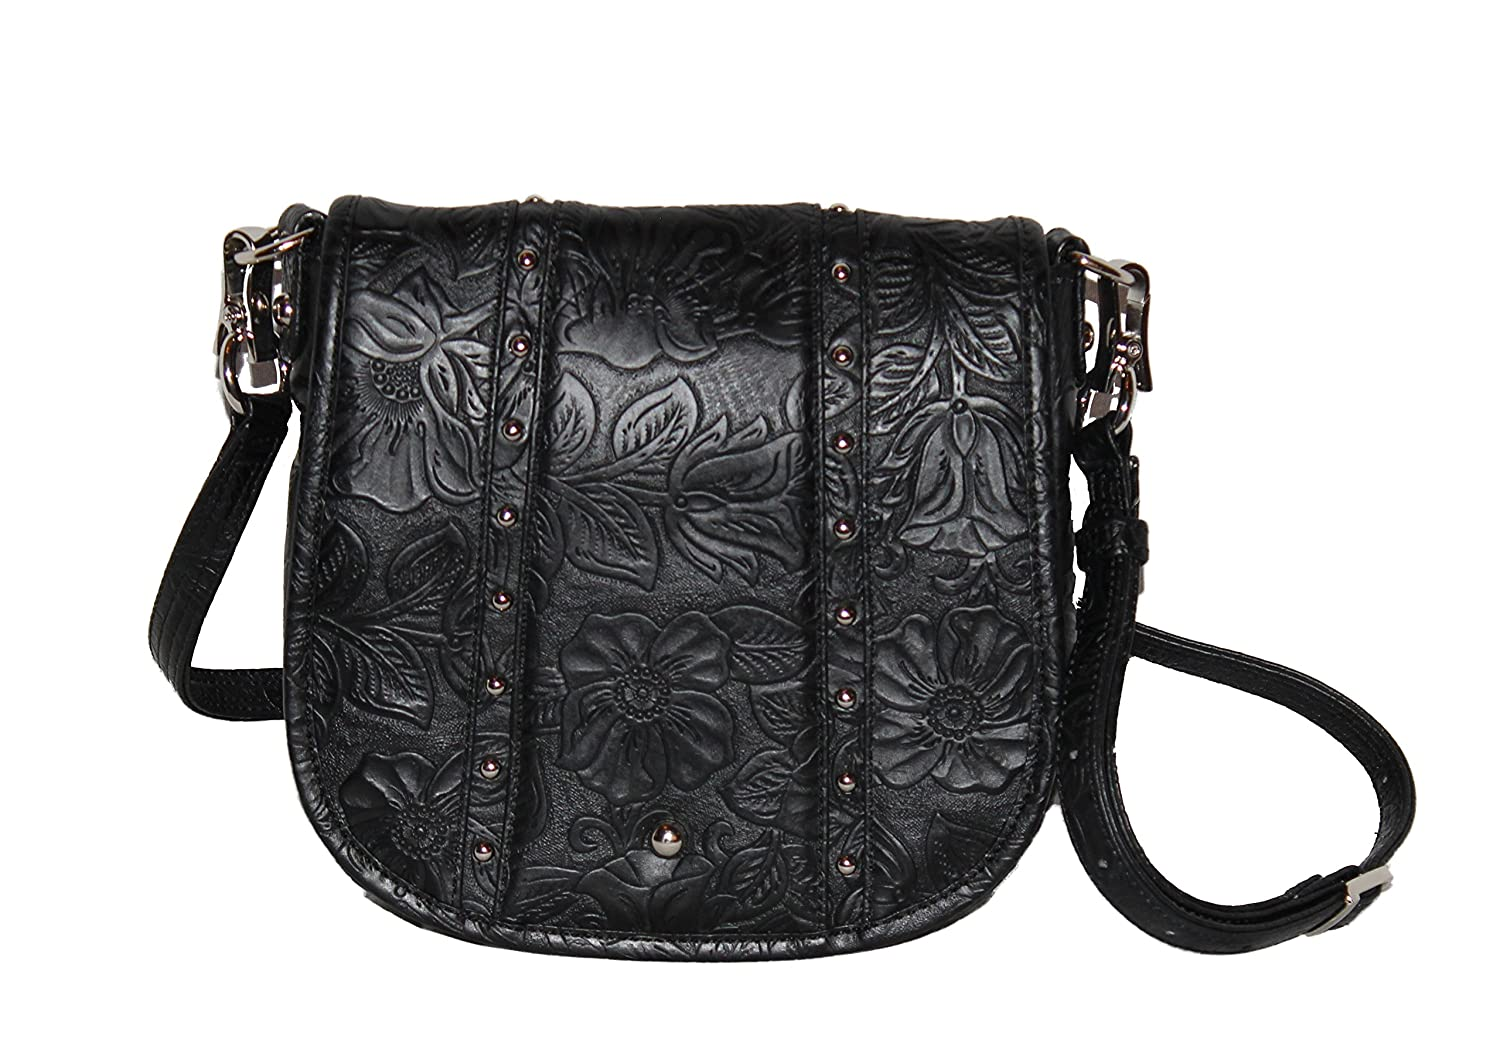 Gun Tote'n Mamas - Concealed Carry Purse - Leather - Studded Flap Bag